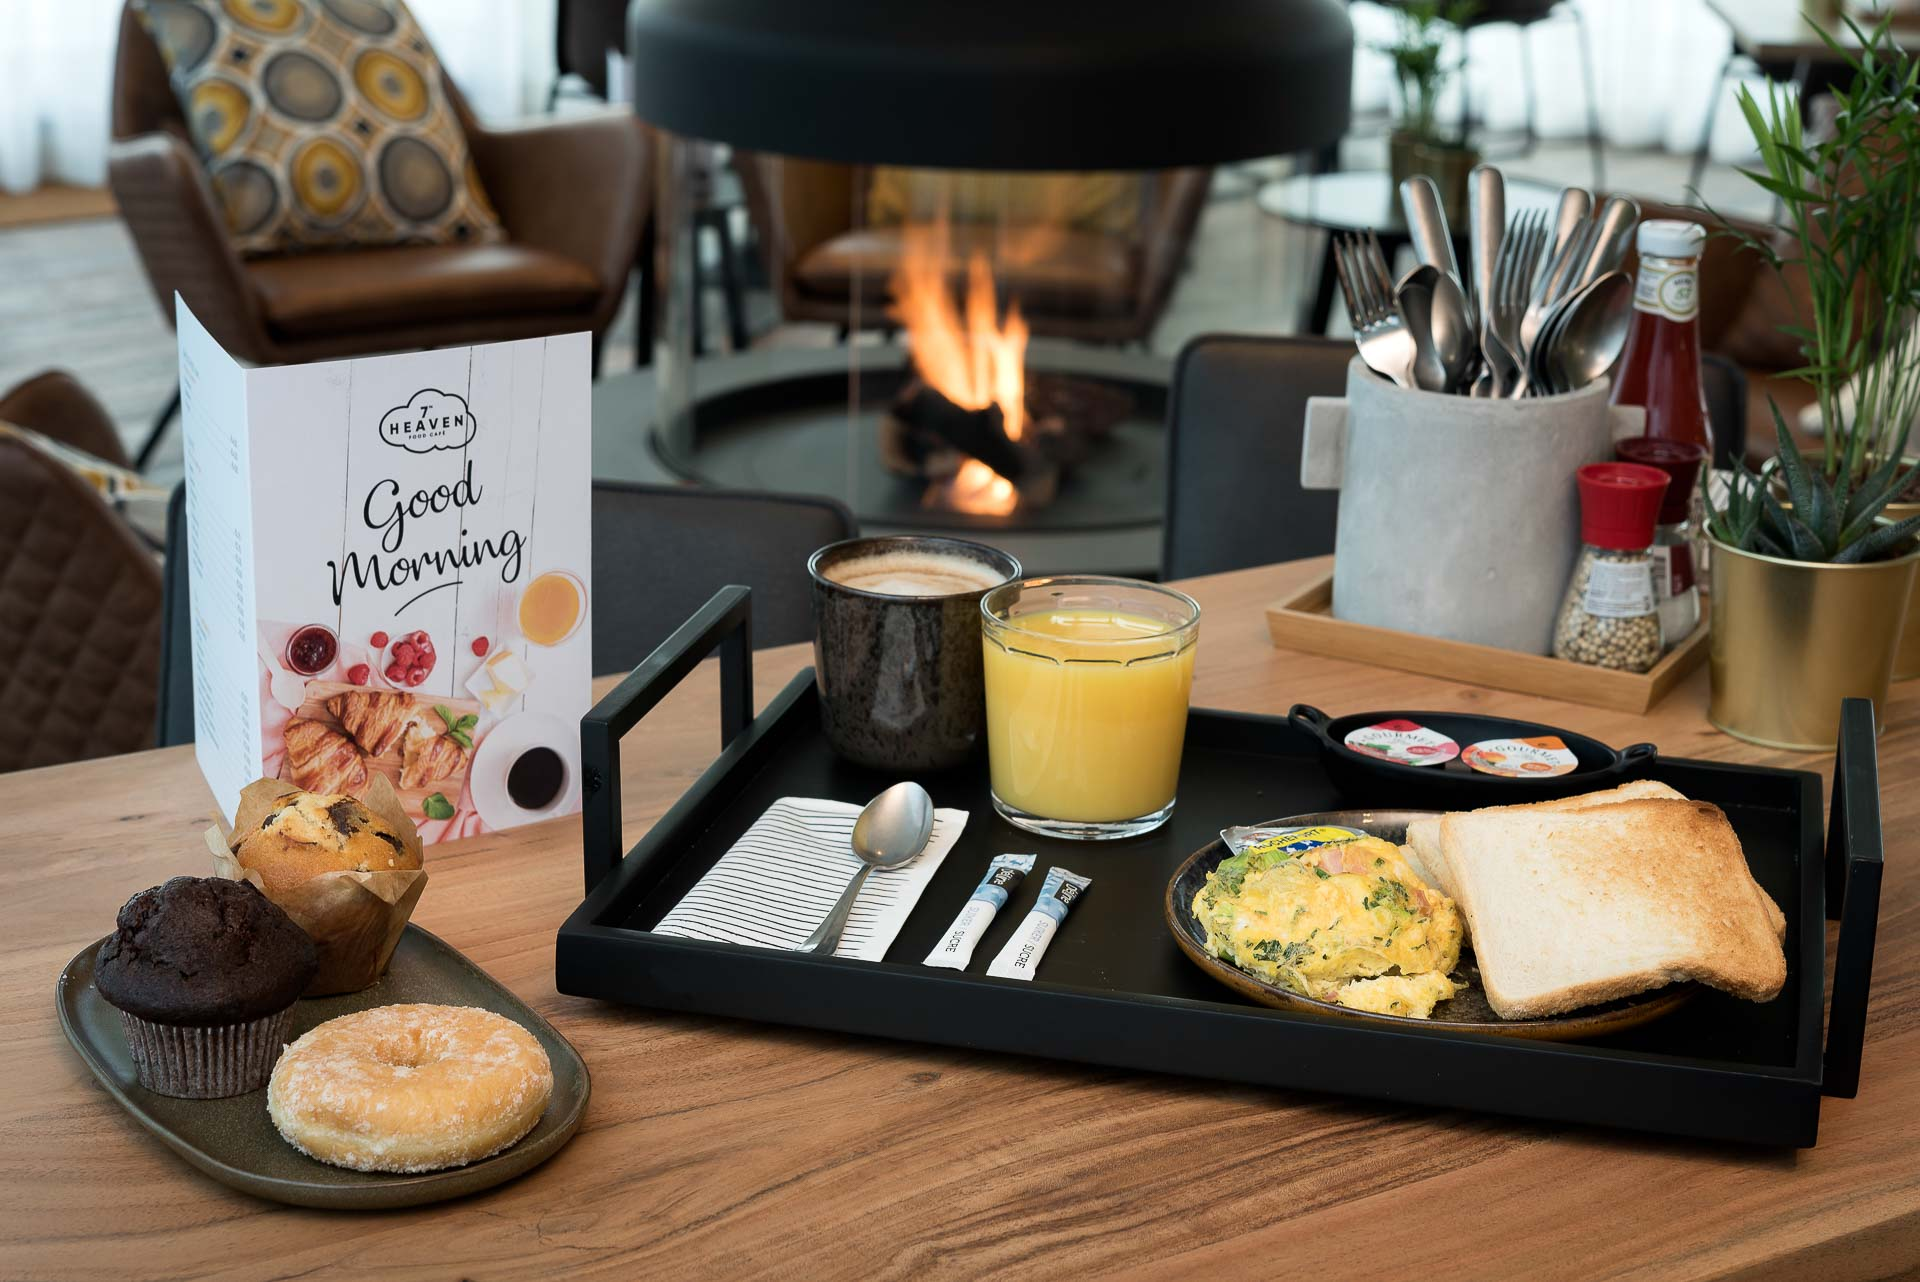 Breakfast in PREMIER SUITES PLUS Antwerp